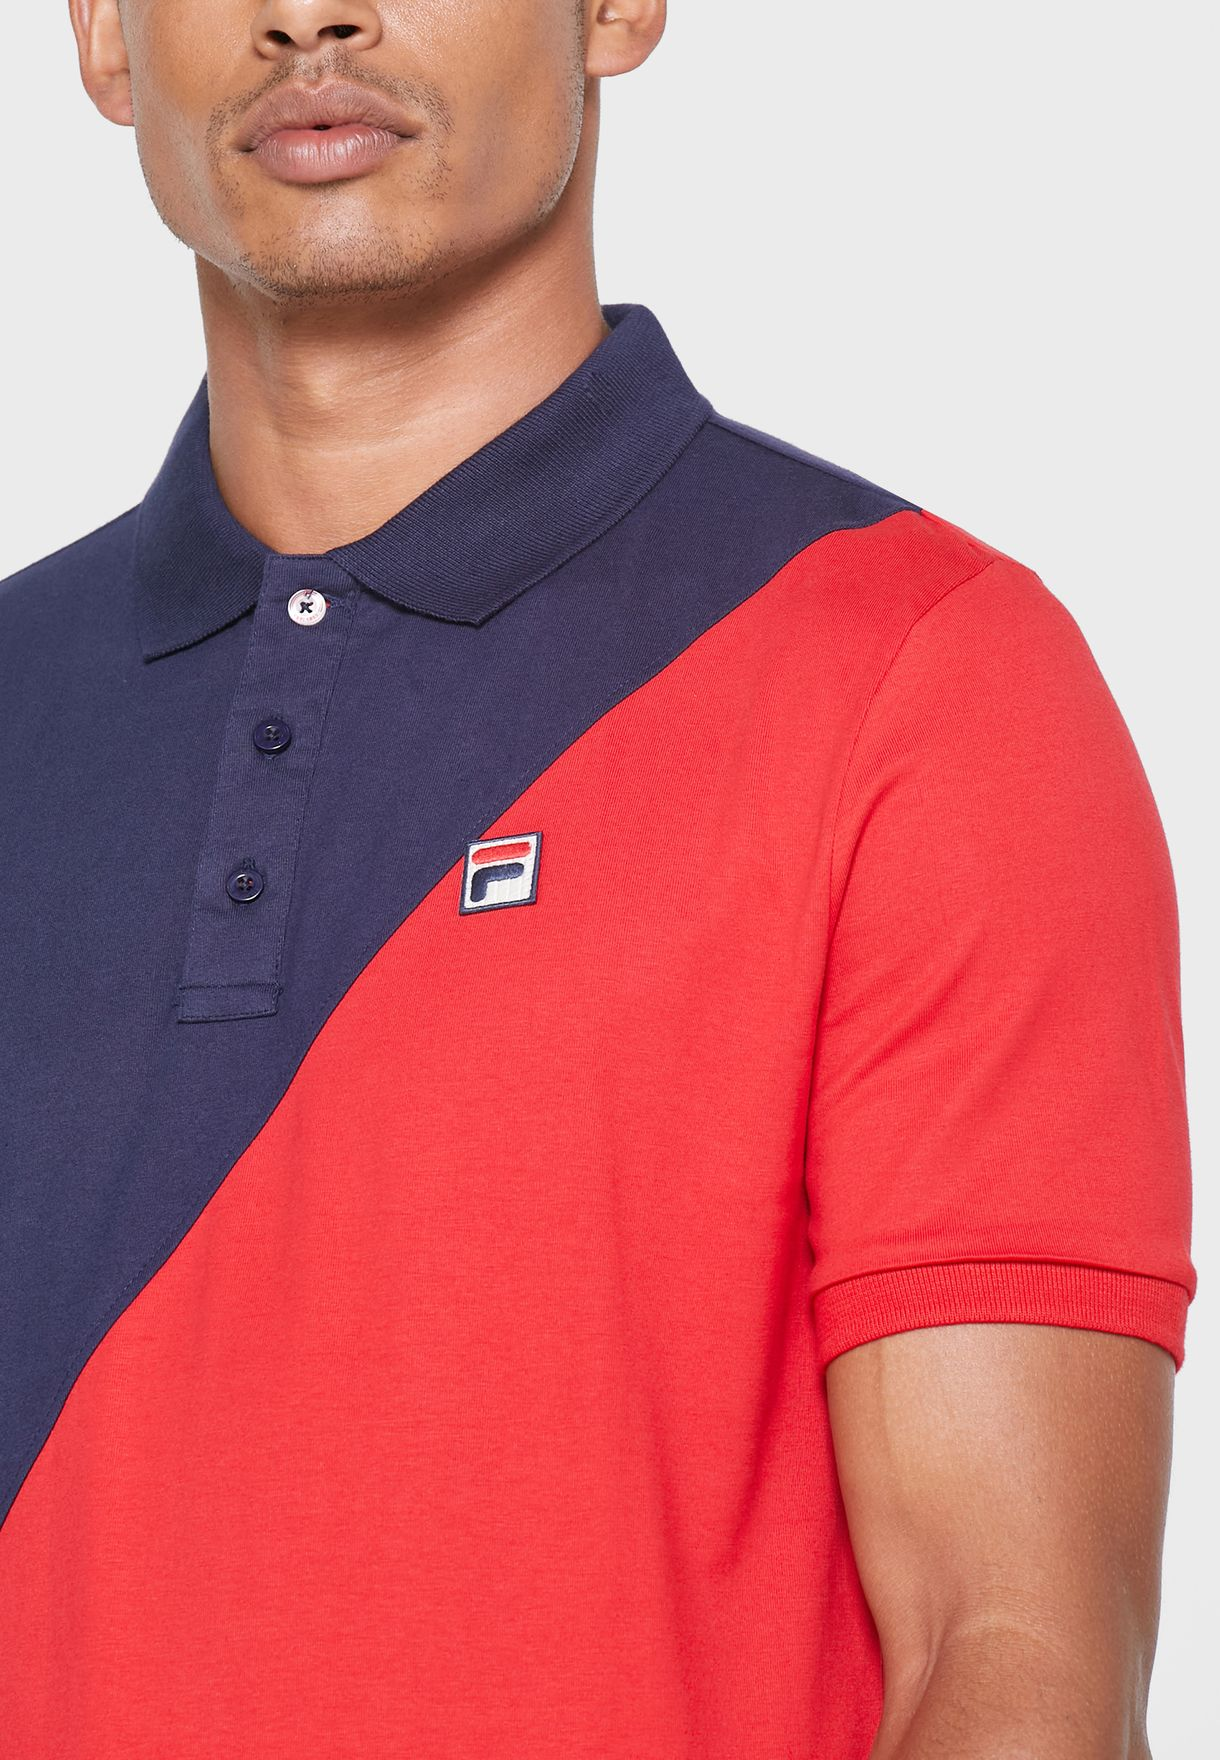 Anton Cut Sew Polo